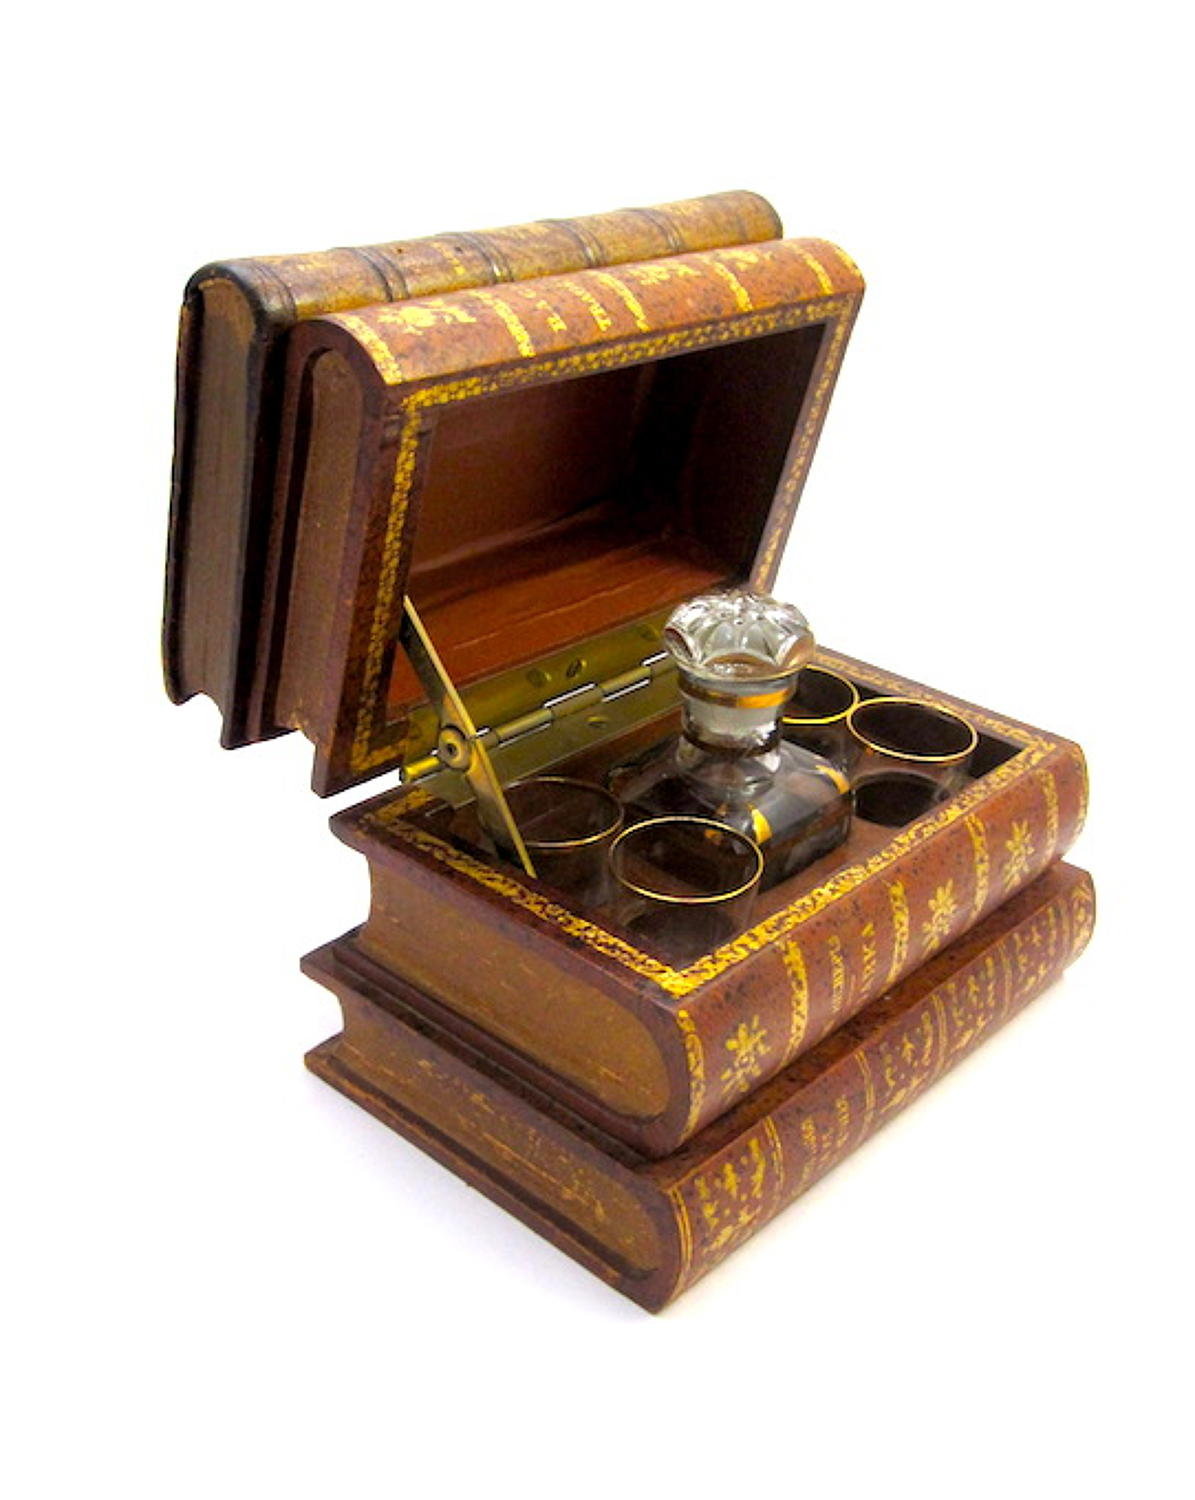 Antique French 'Book' Liquor Casket